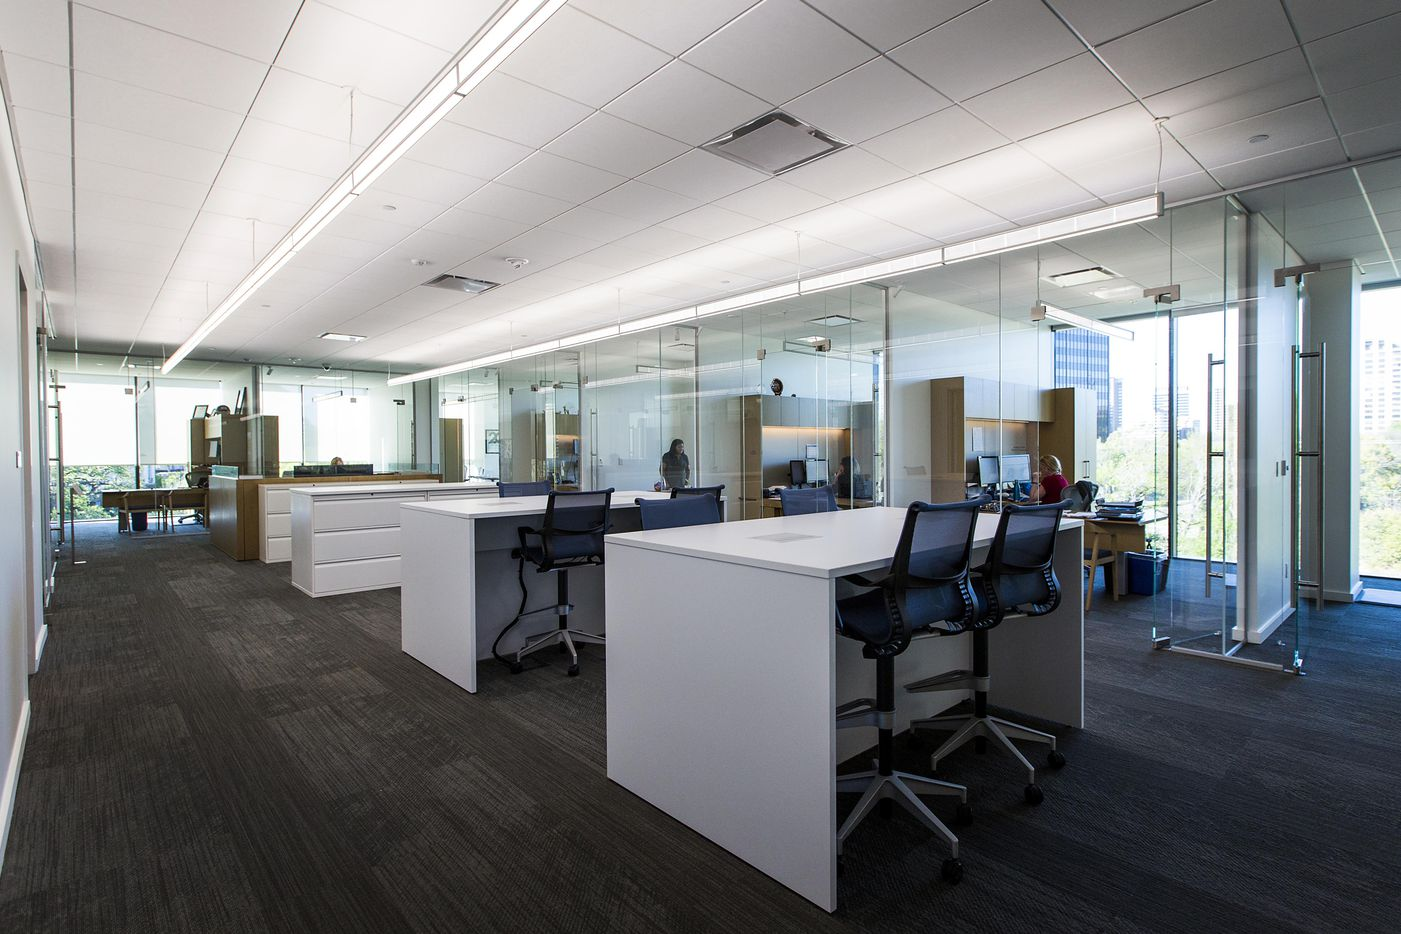 Community desks and offices seen during a tour of the new headquarters for the Perot family businesses.